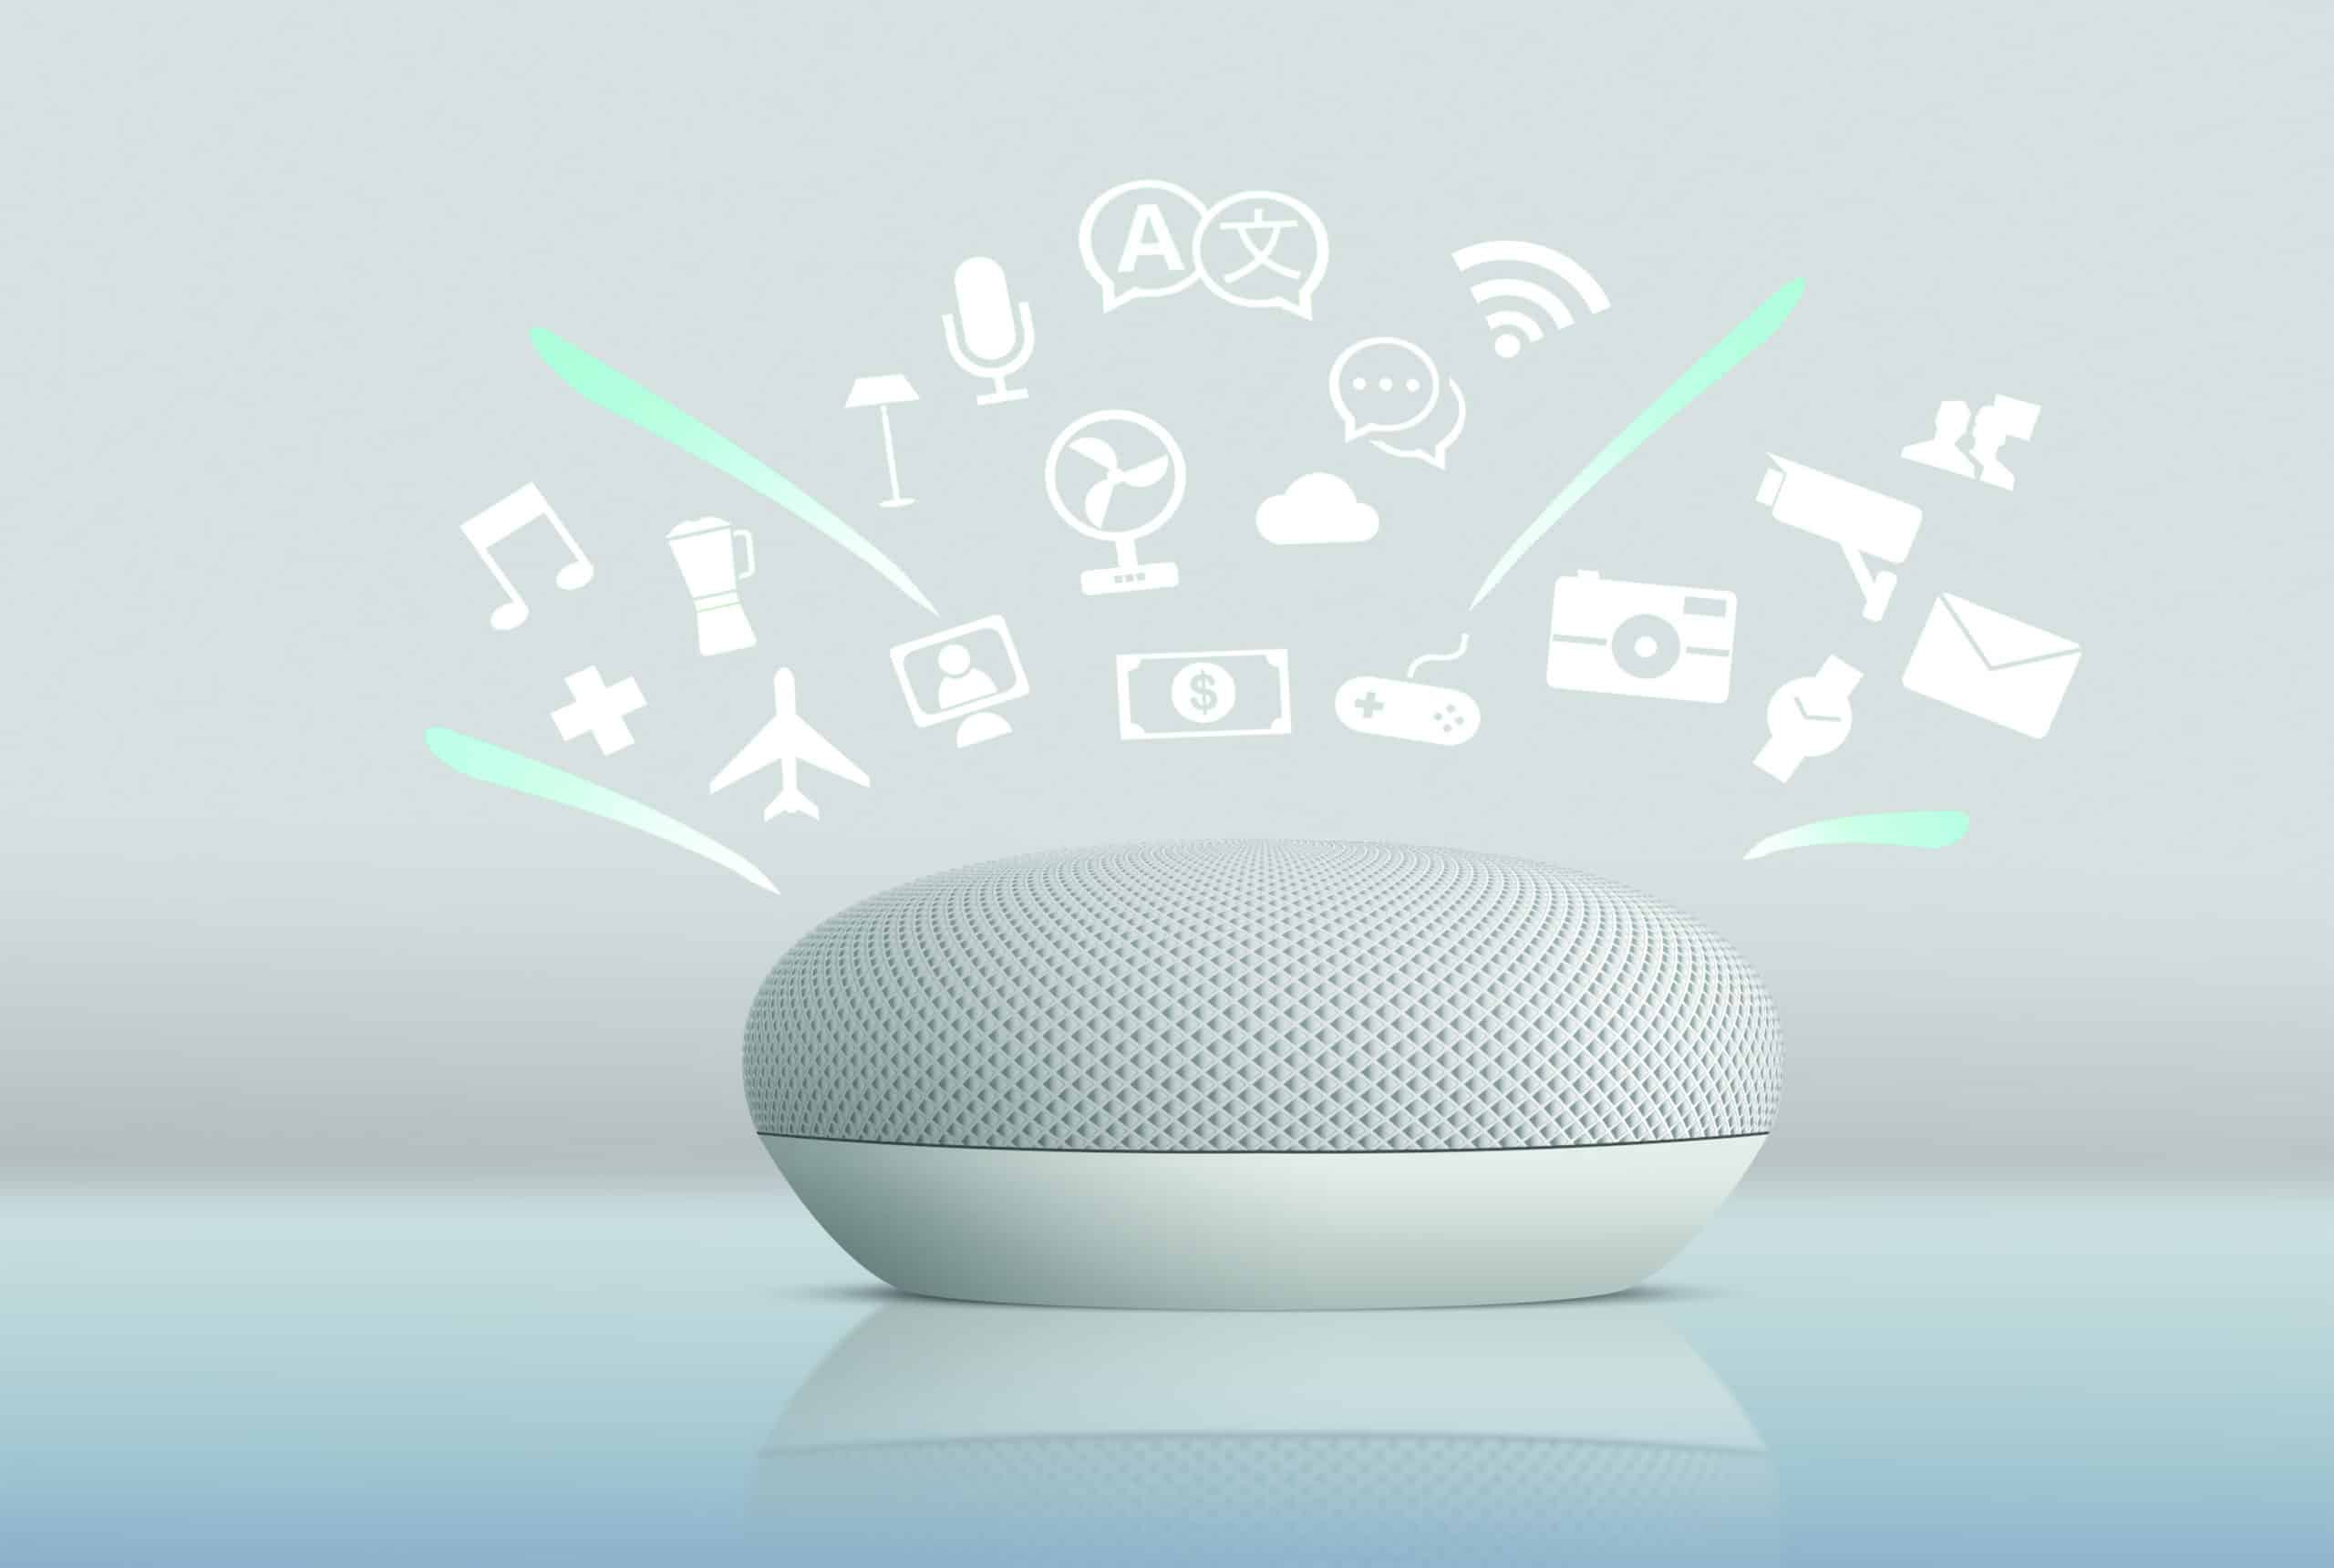 Image for EBI.AI authorised reseller of Google Nest smart home devices